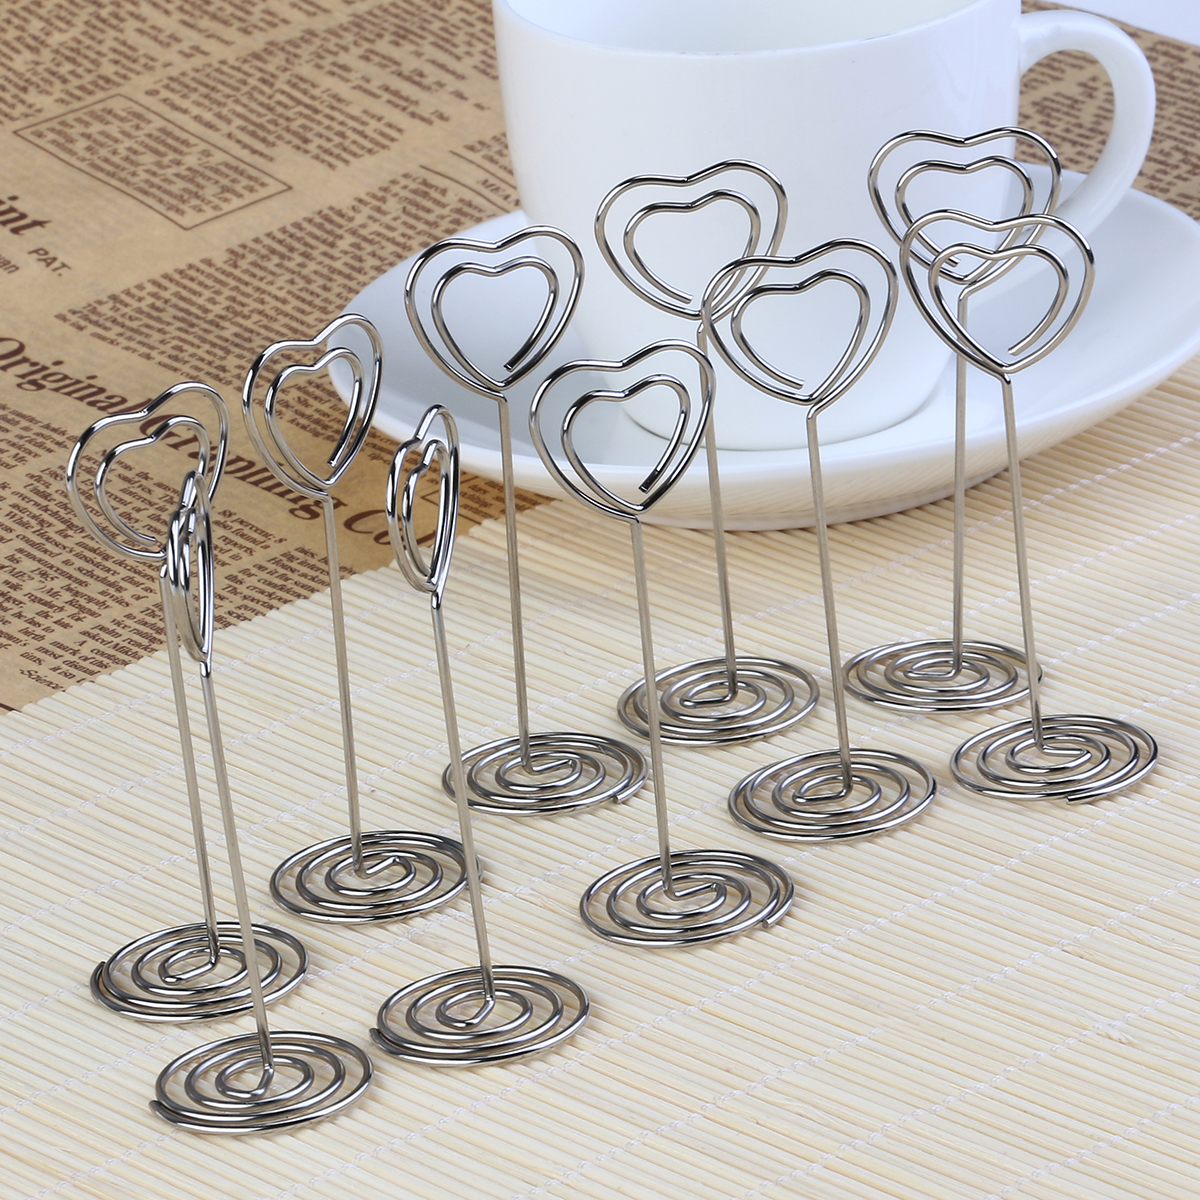 PIXNOR 10pcs Place Card Holder Heart Shape Wedding Favor Party Place Name Number Card Holder Wedding Party Favor Table Decor(China (Mainland))